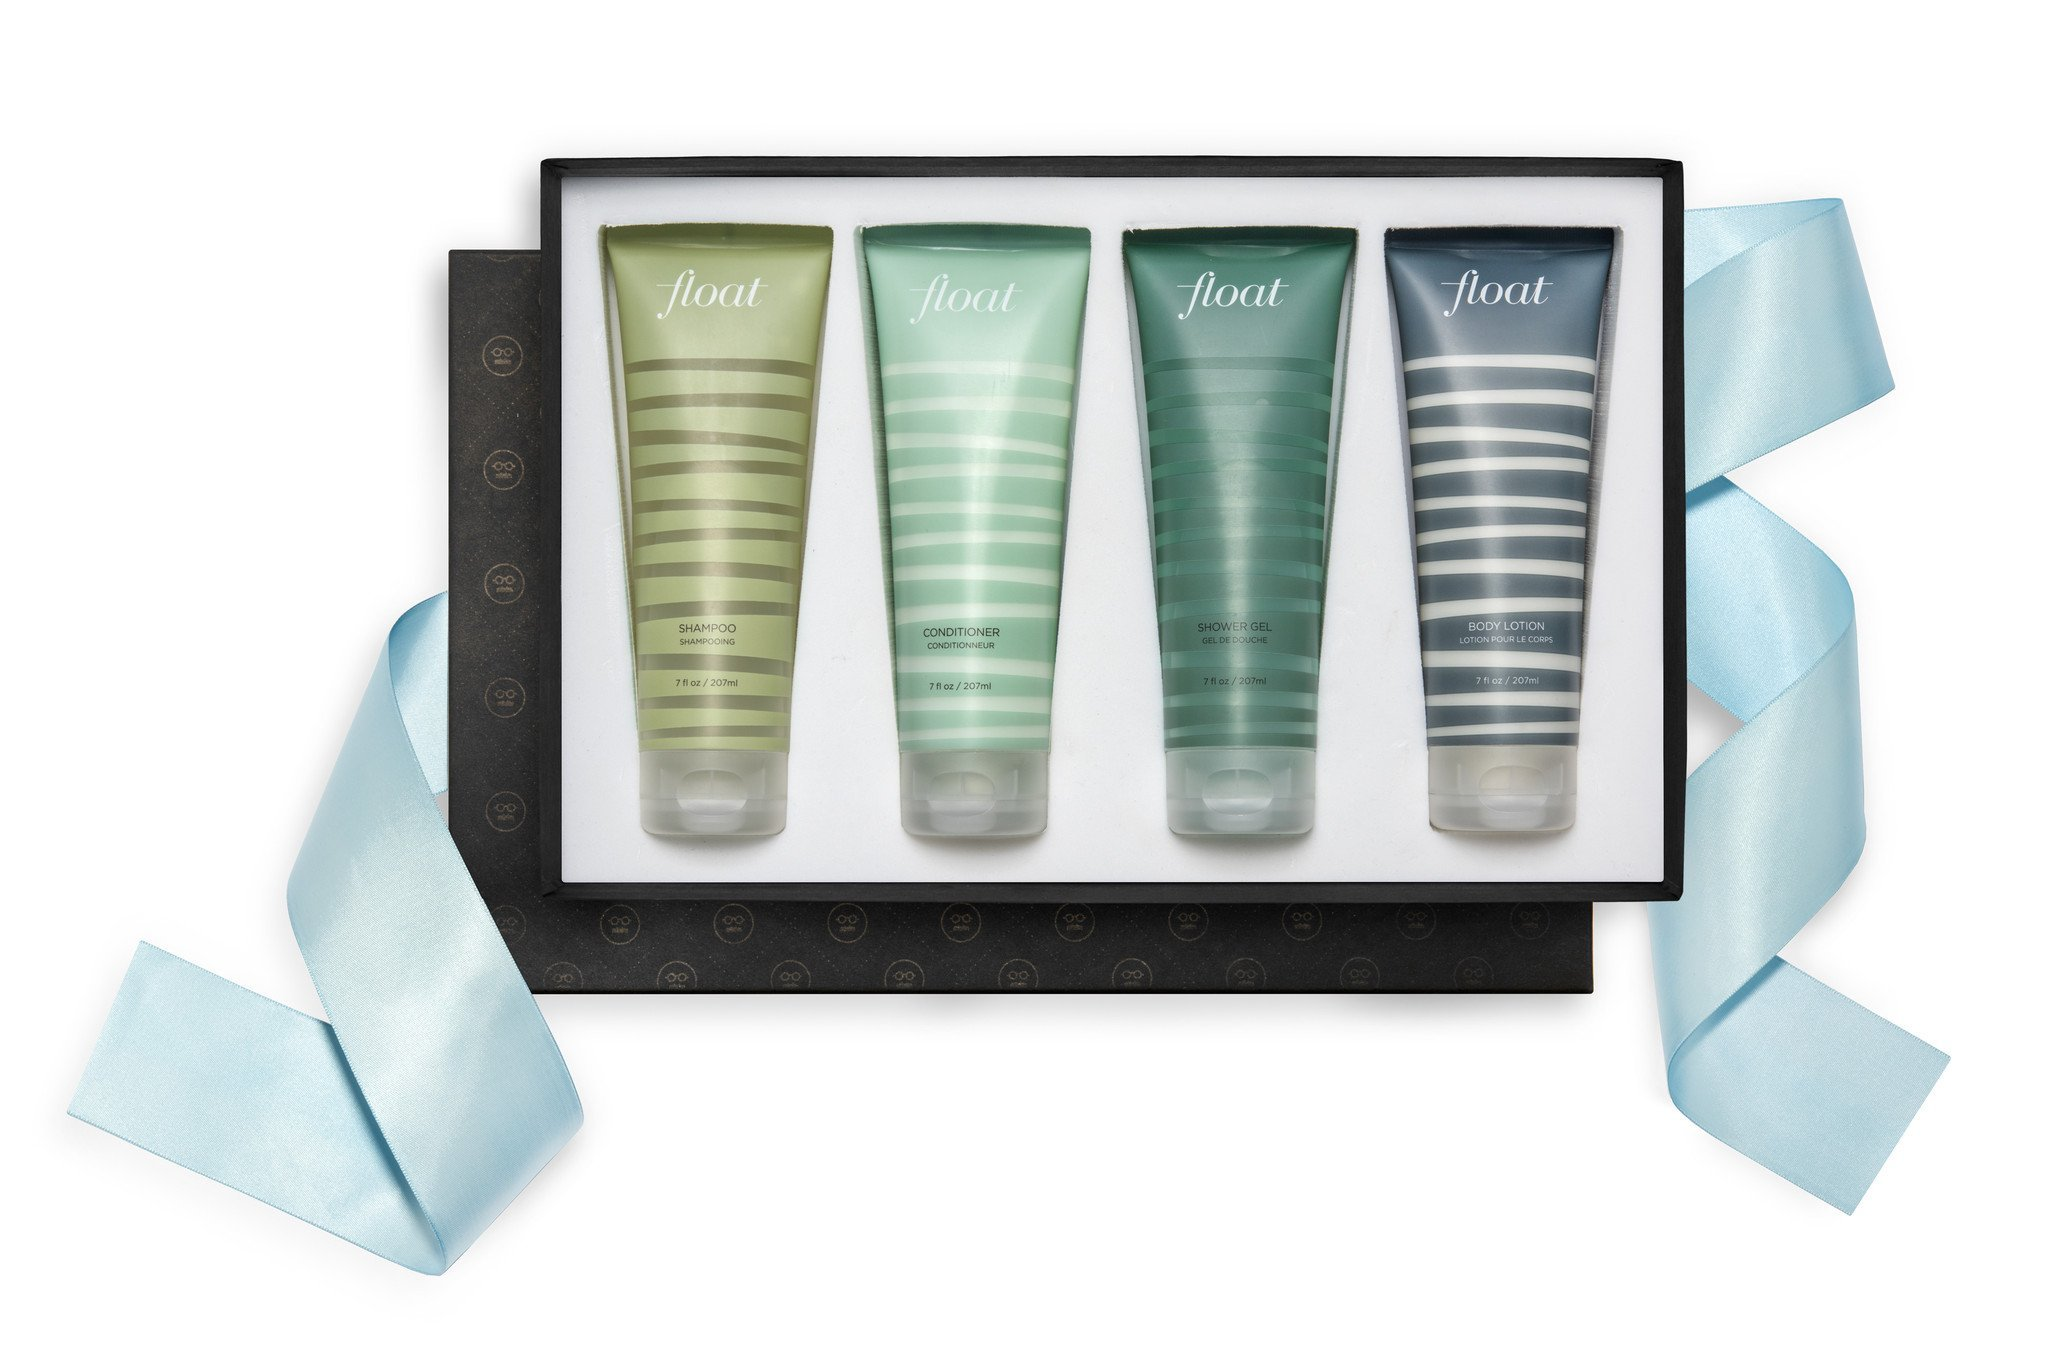 William Roam FLOAT Hair & Body Gift Set - Vegan, Cruelty-free, 4pc Gift Set, Includes FLOAT Body Lotion, Shower Gel, Shampoo, Conditioner, 7oz by William Roam